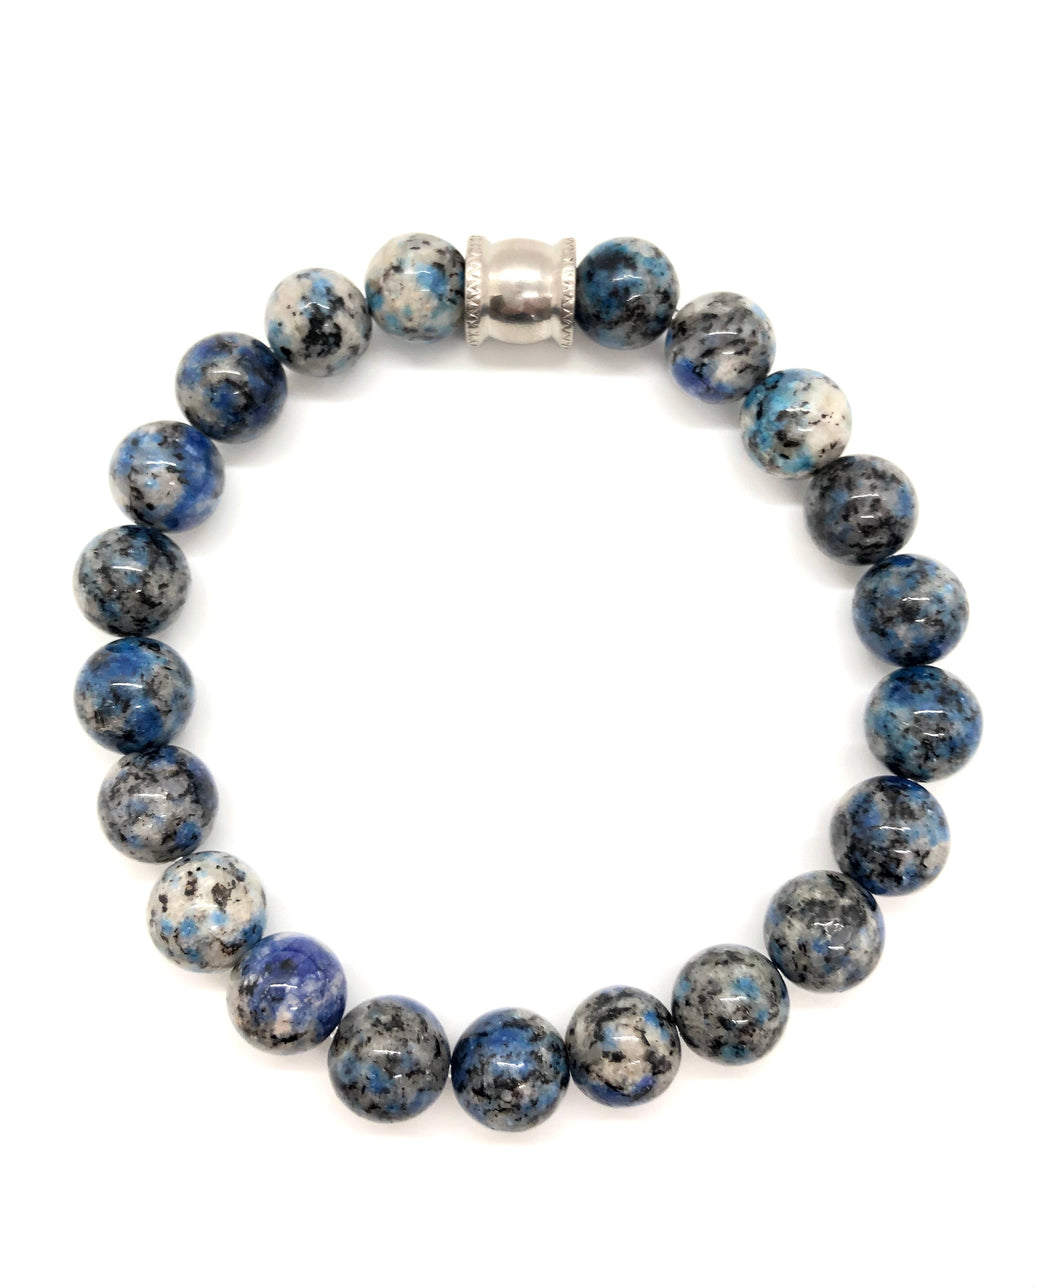 Blue Granite Gemstone bracelet with Stainless Steel Accent